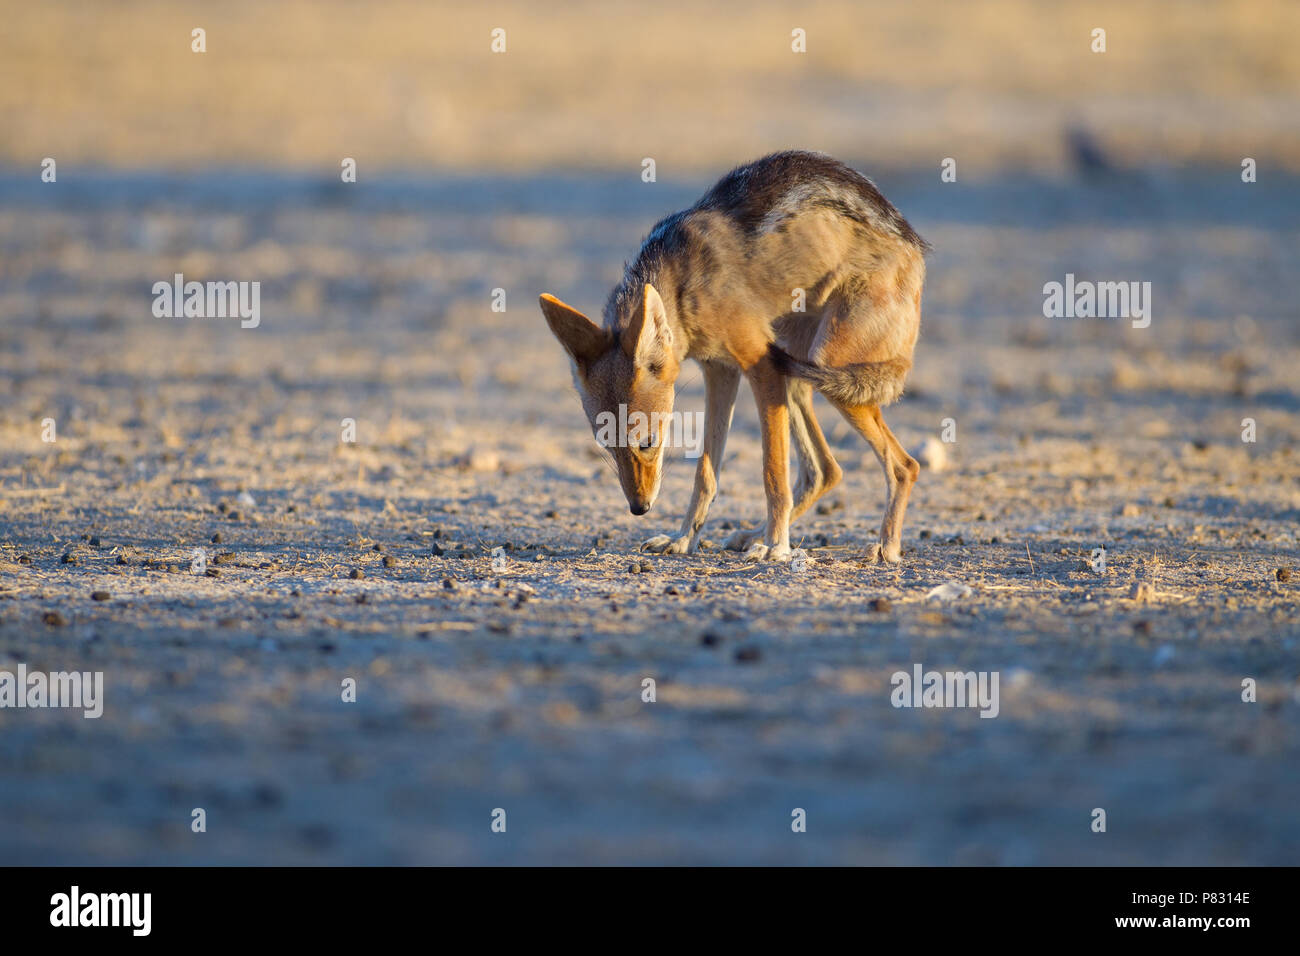 Inferior jackal shows obeying behaviour by tucking the tail between legs - Stock Image